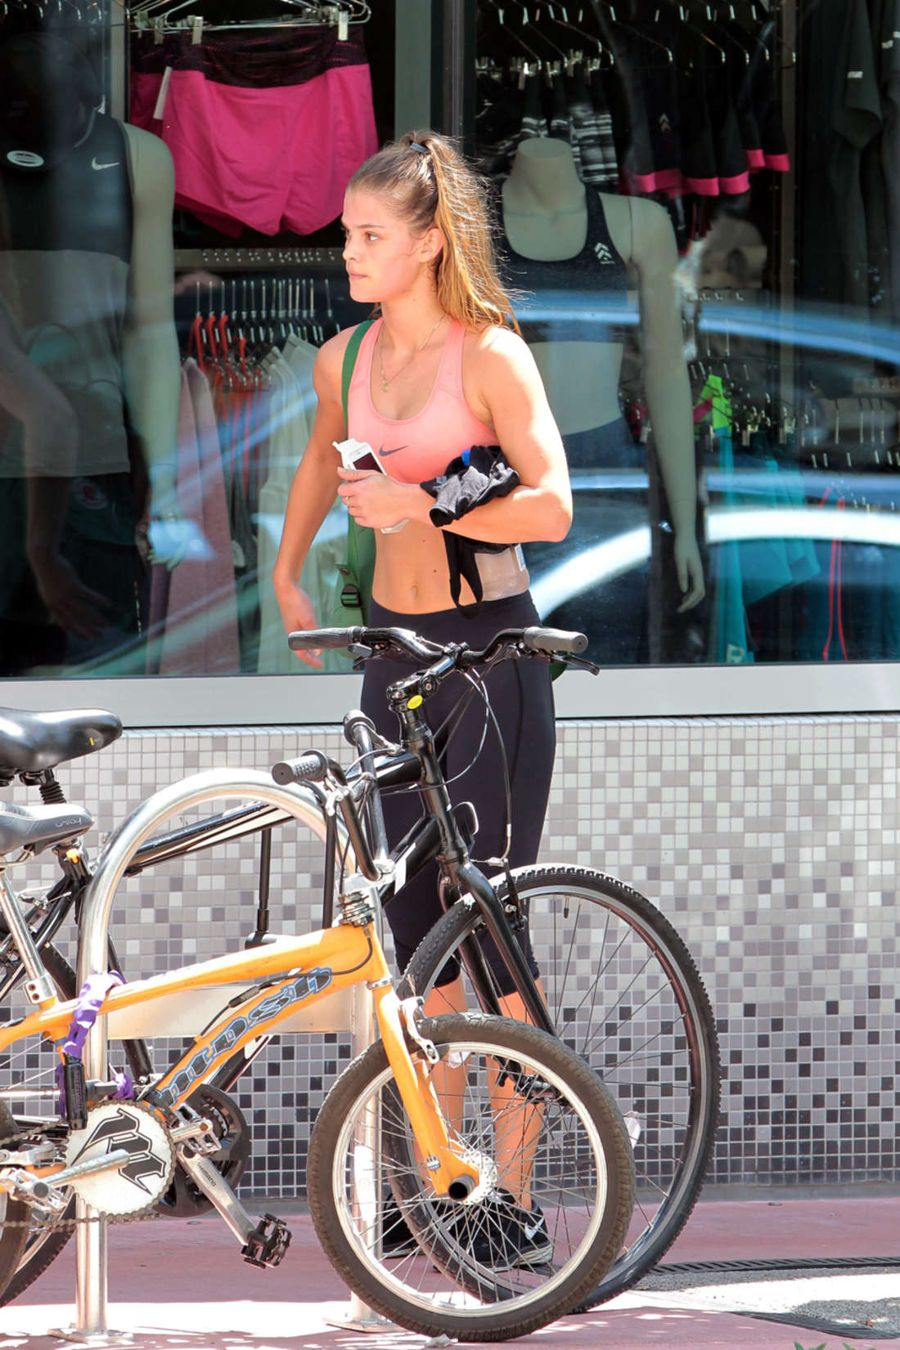 Nina Agdal in Tights Leaving the Gym